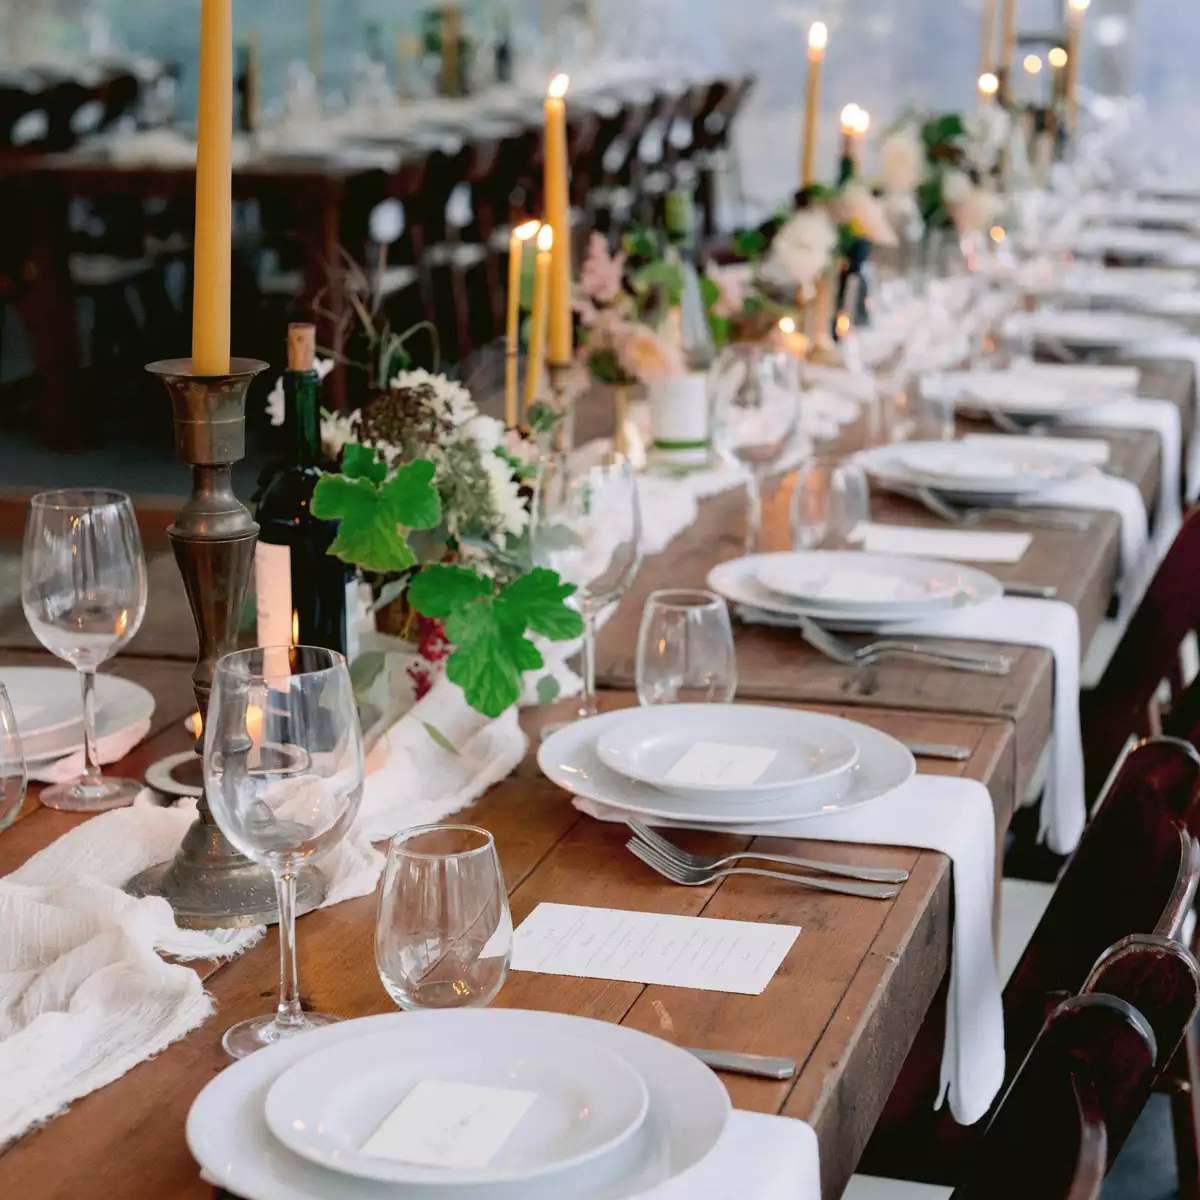 Long tables topped with handmade beeswax candles and greenery arrangements